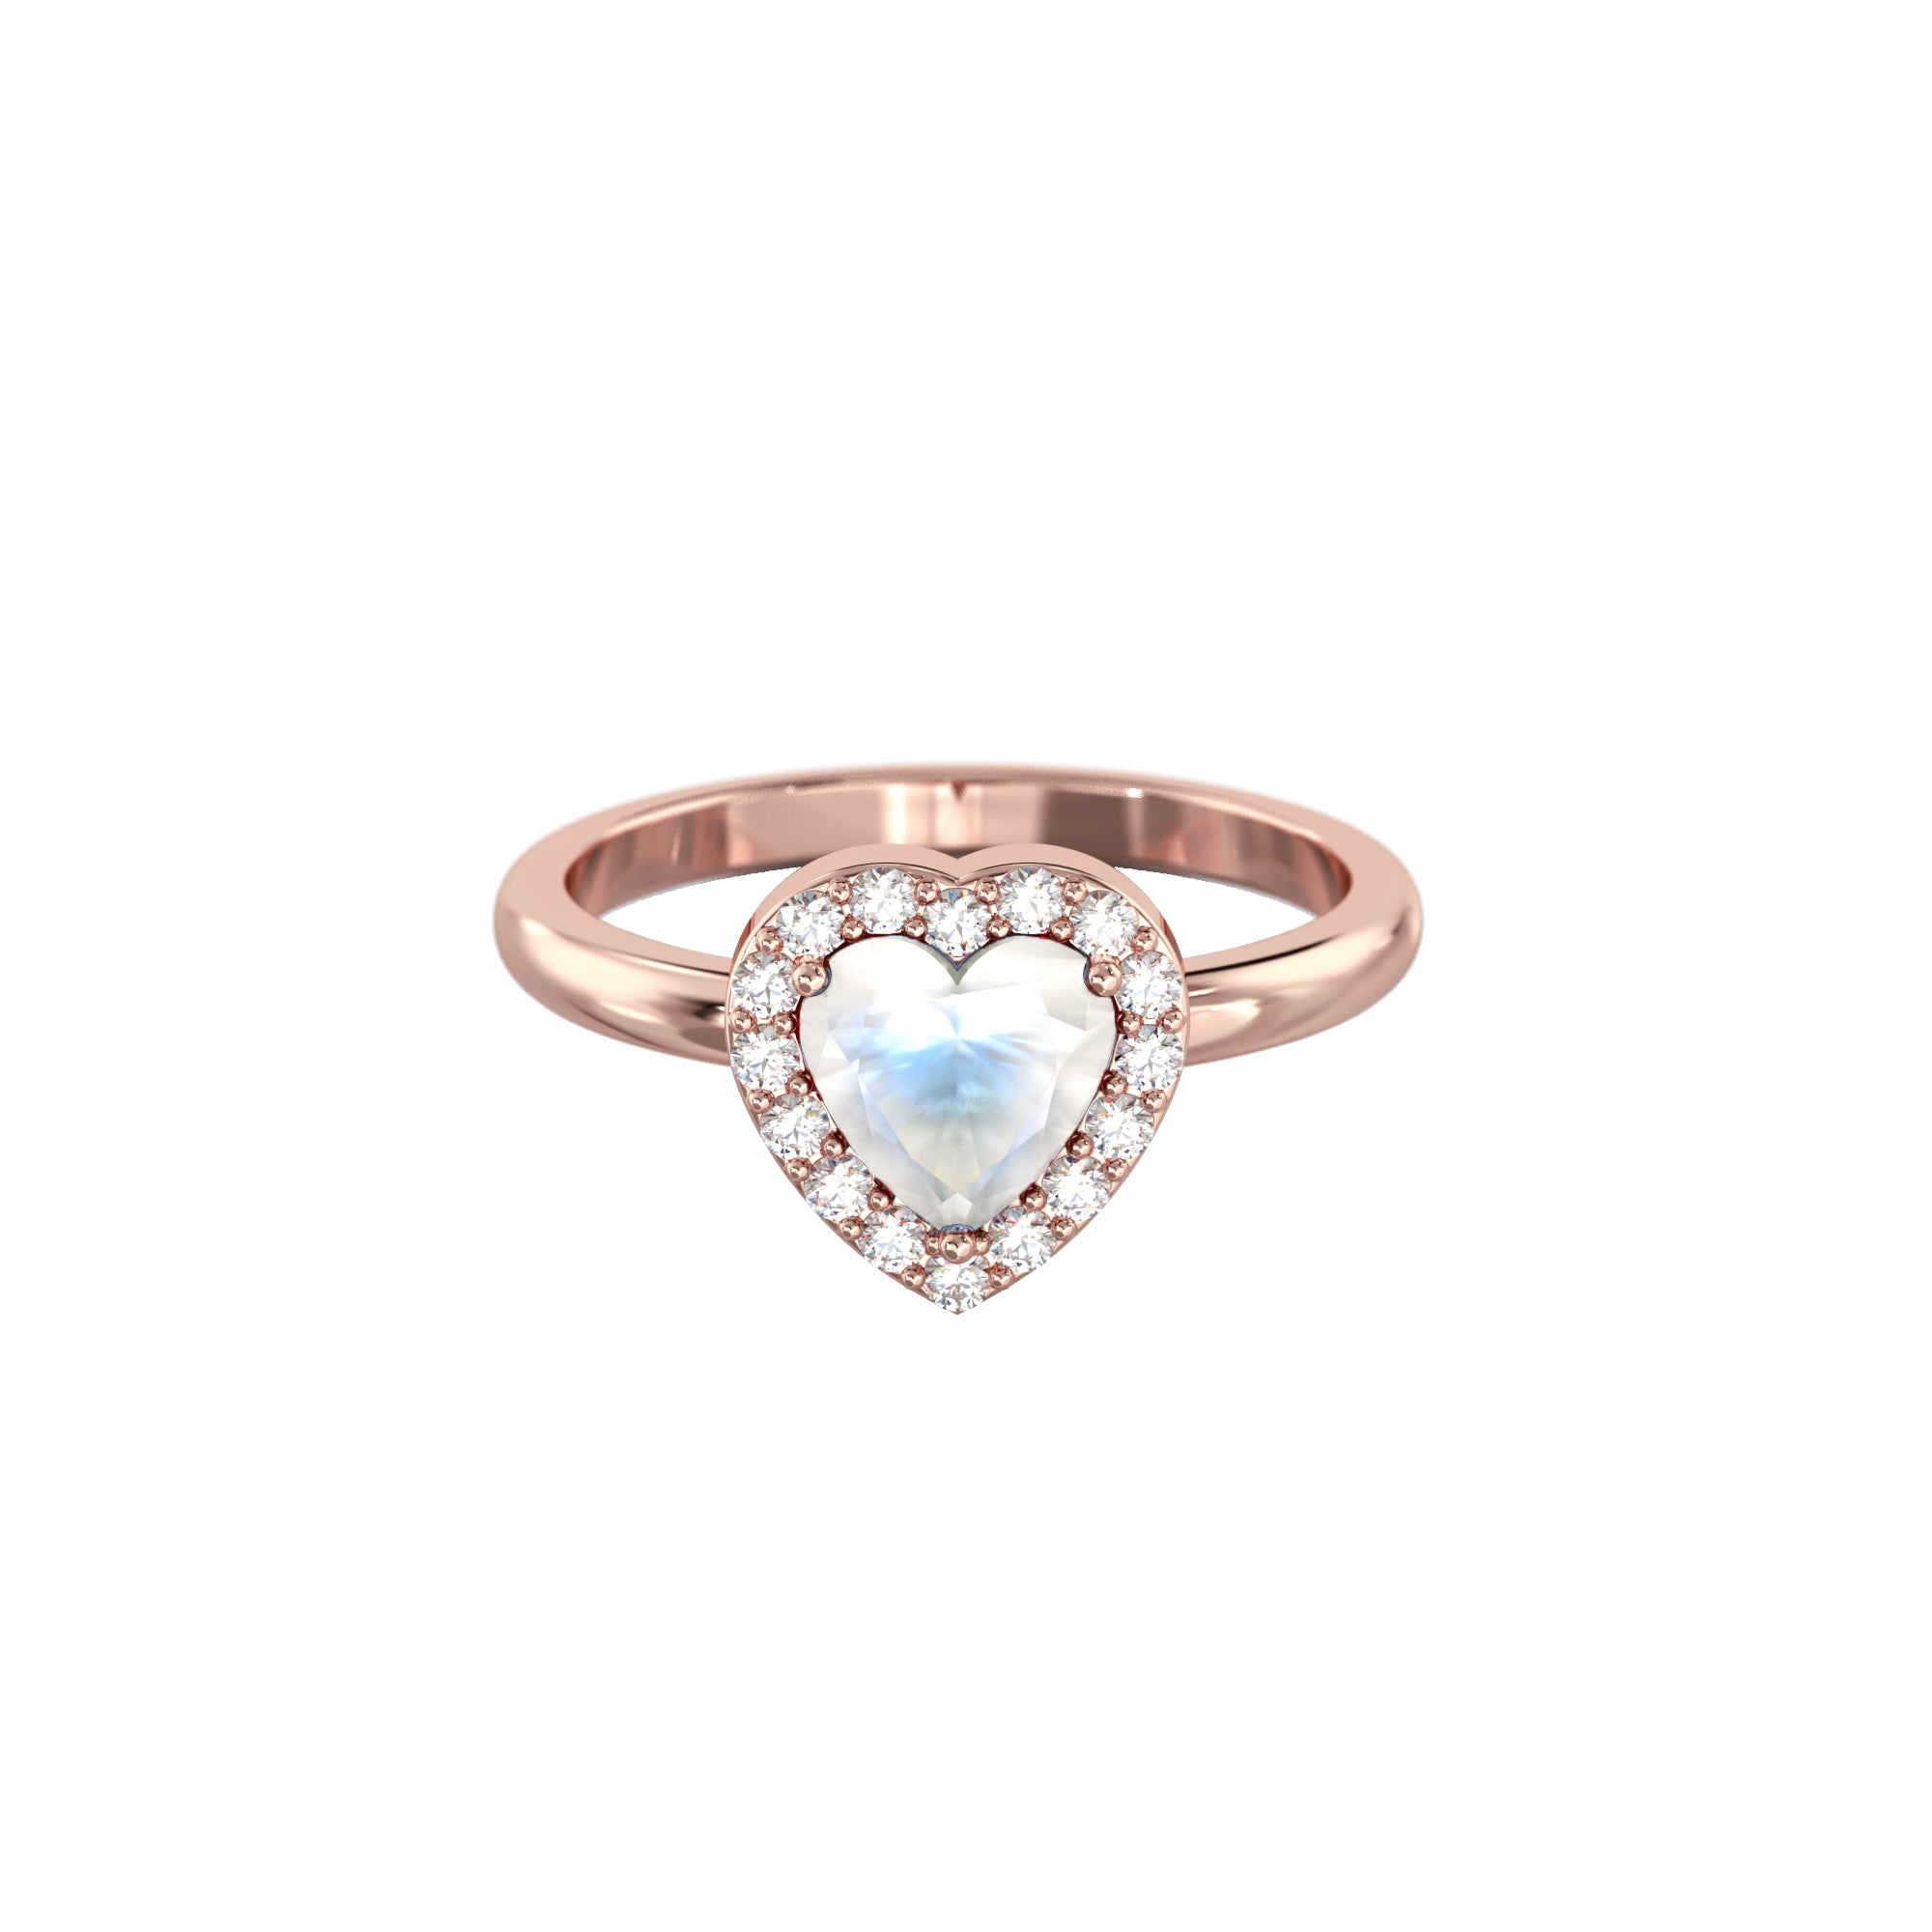 925 Silver Luxe Series Ring - Leanne (Moonstone) - Rose Gold Plated